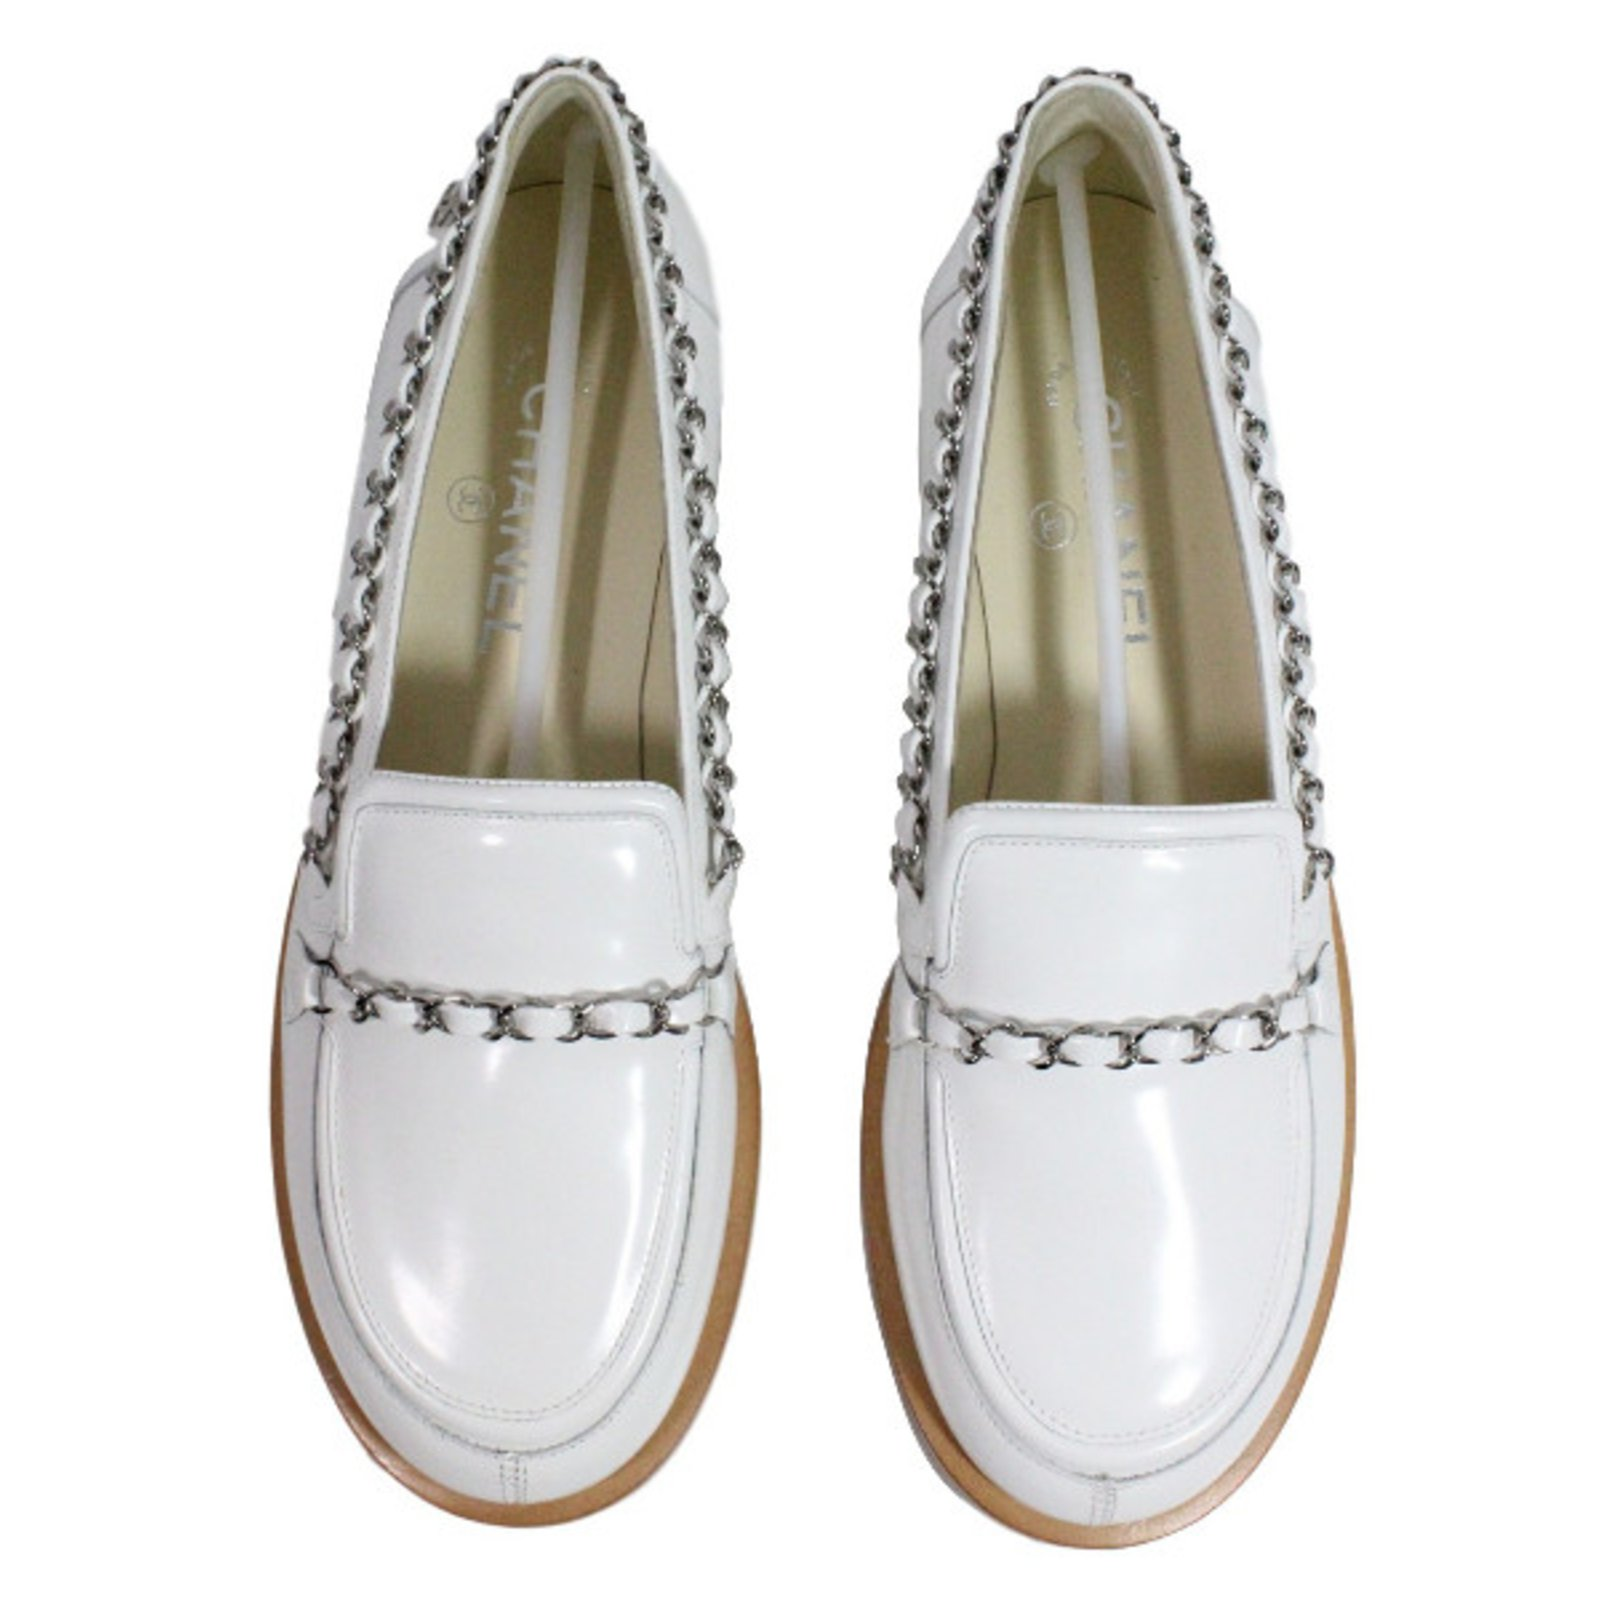 Chanel Loafers Flats Leather White ref